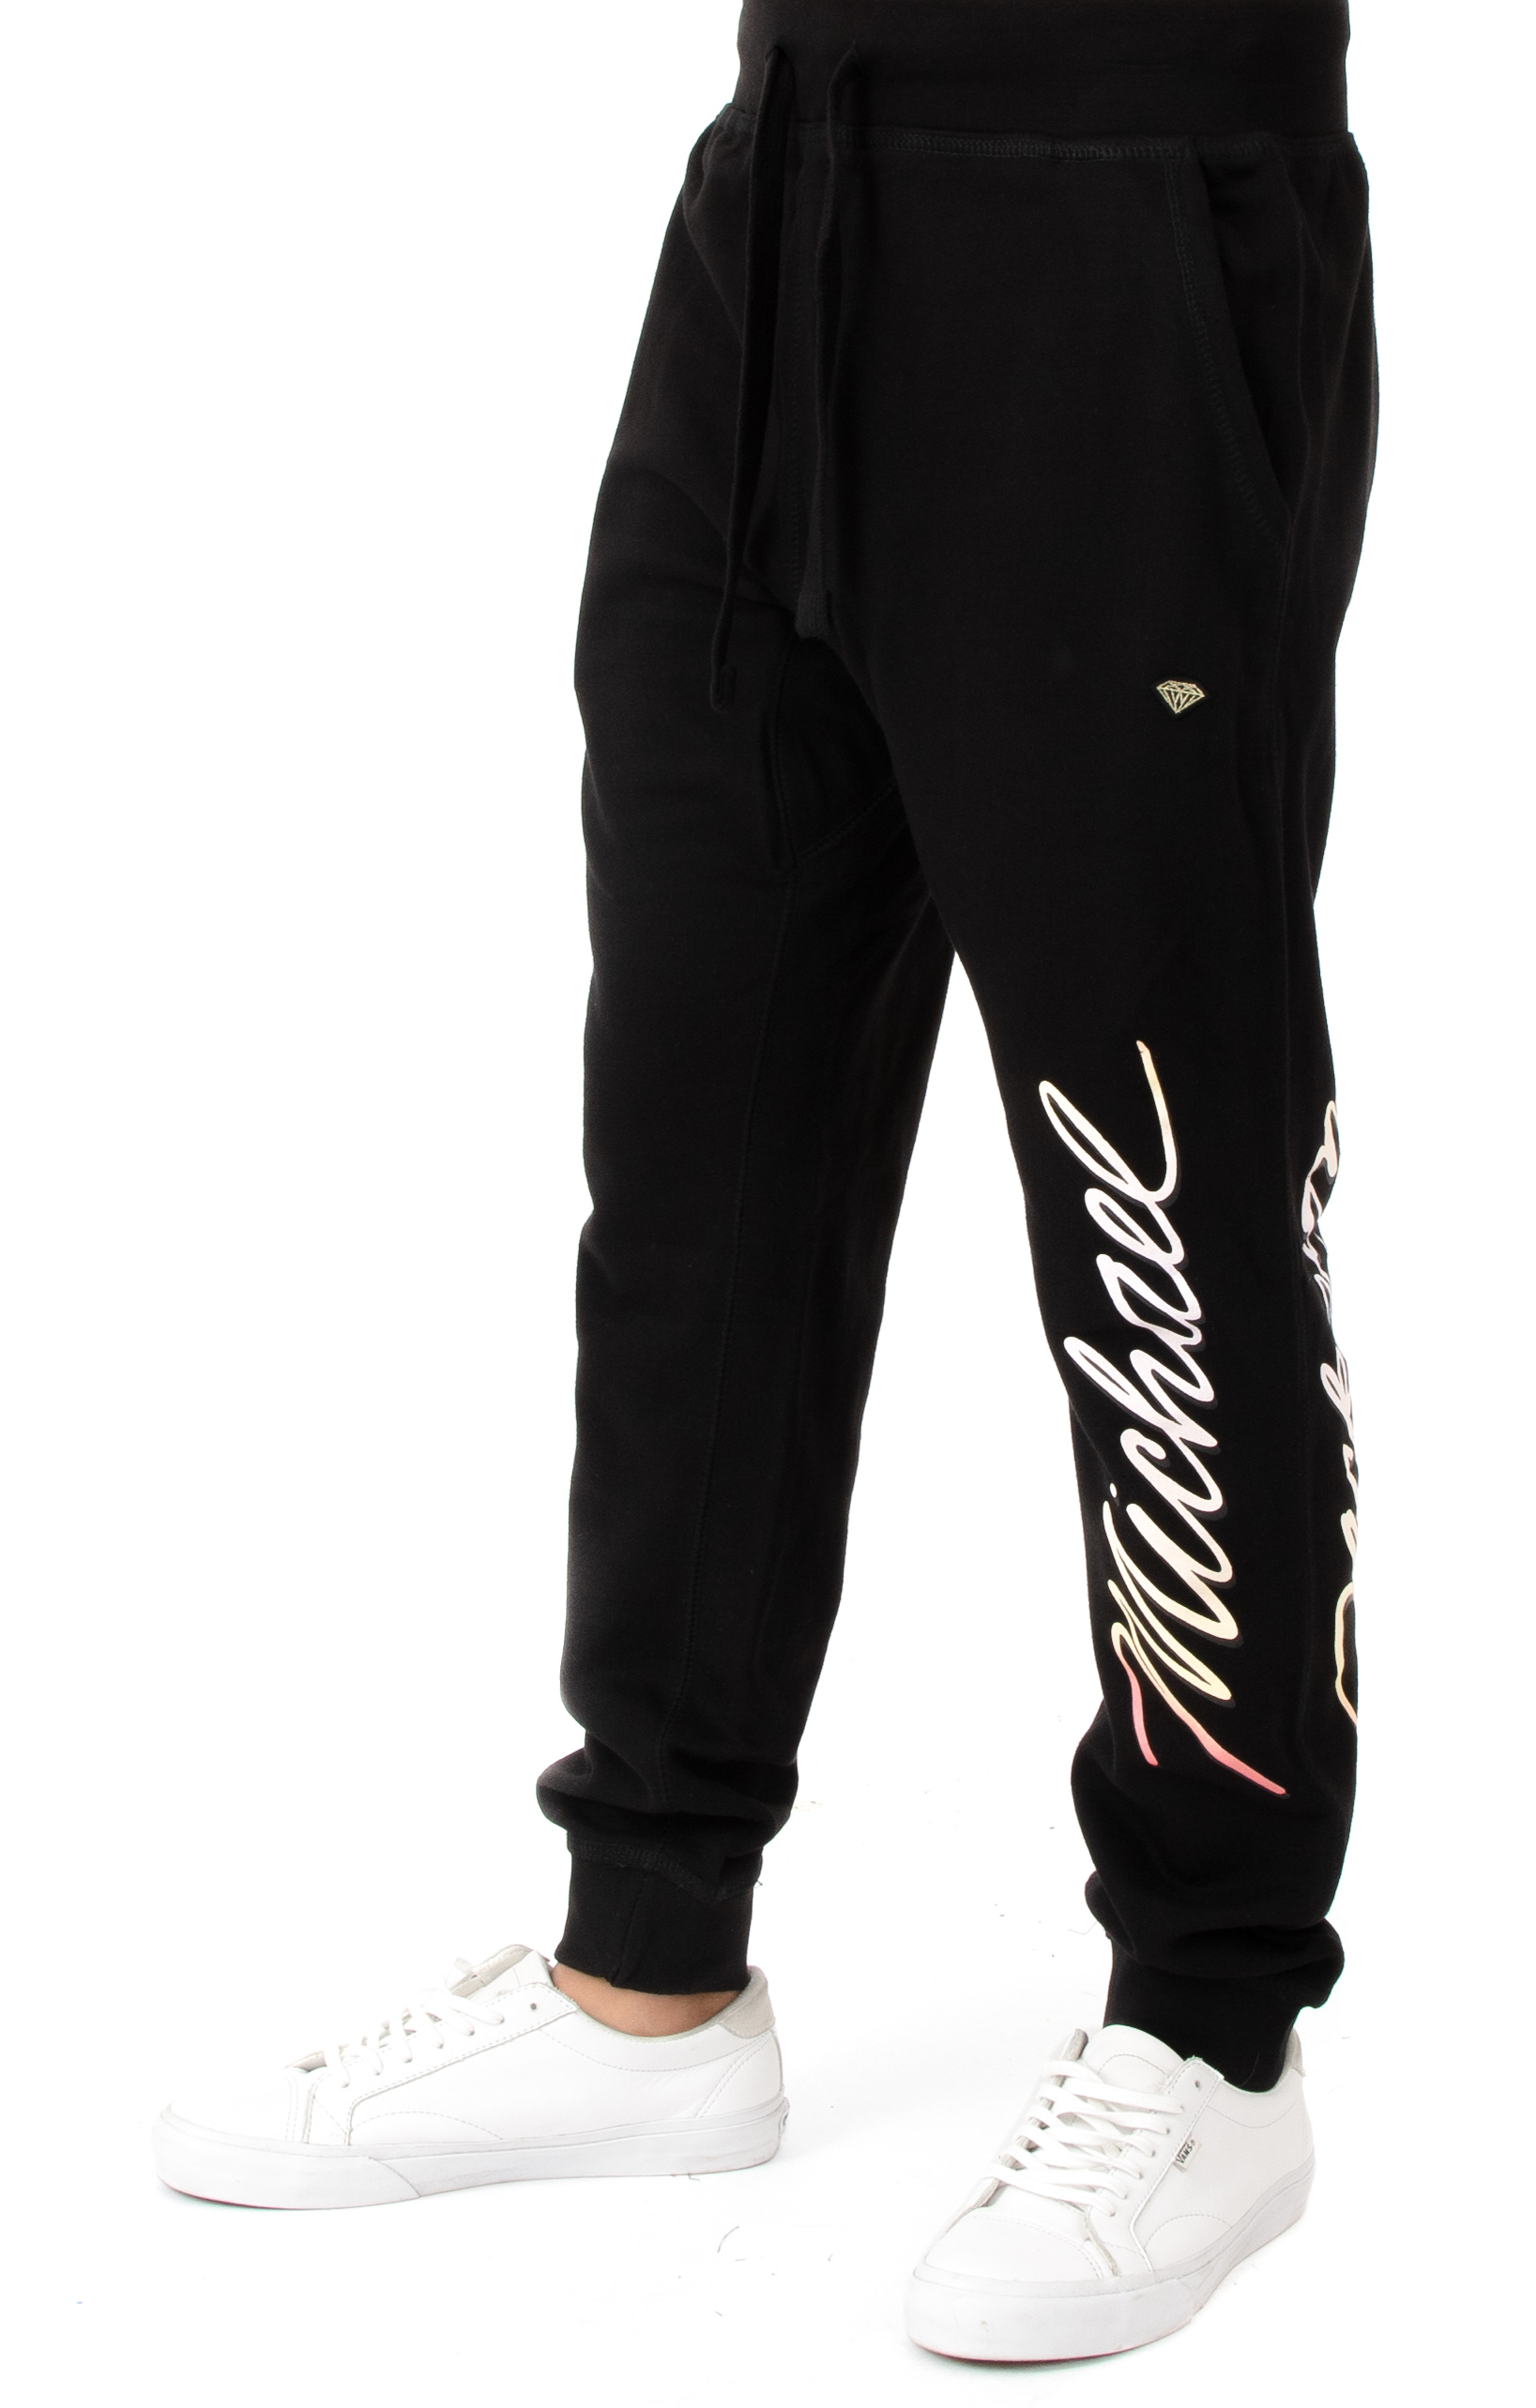 Thriller Sweatpants - Black